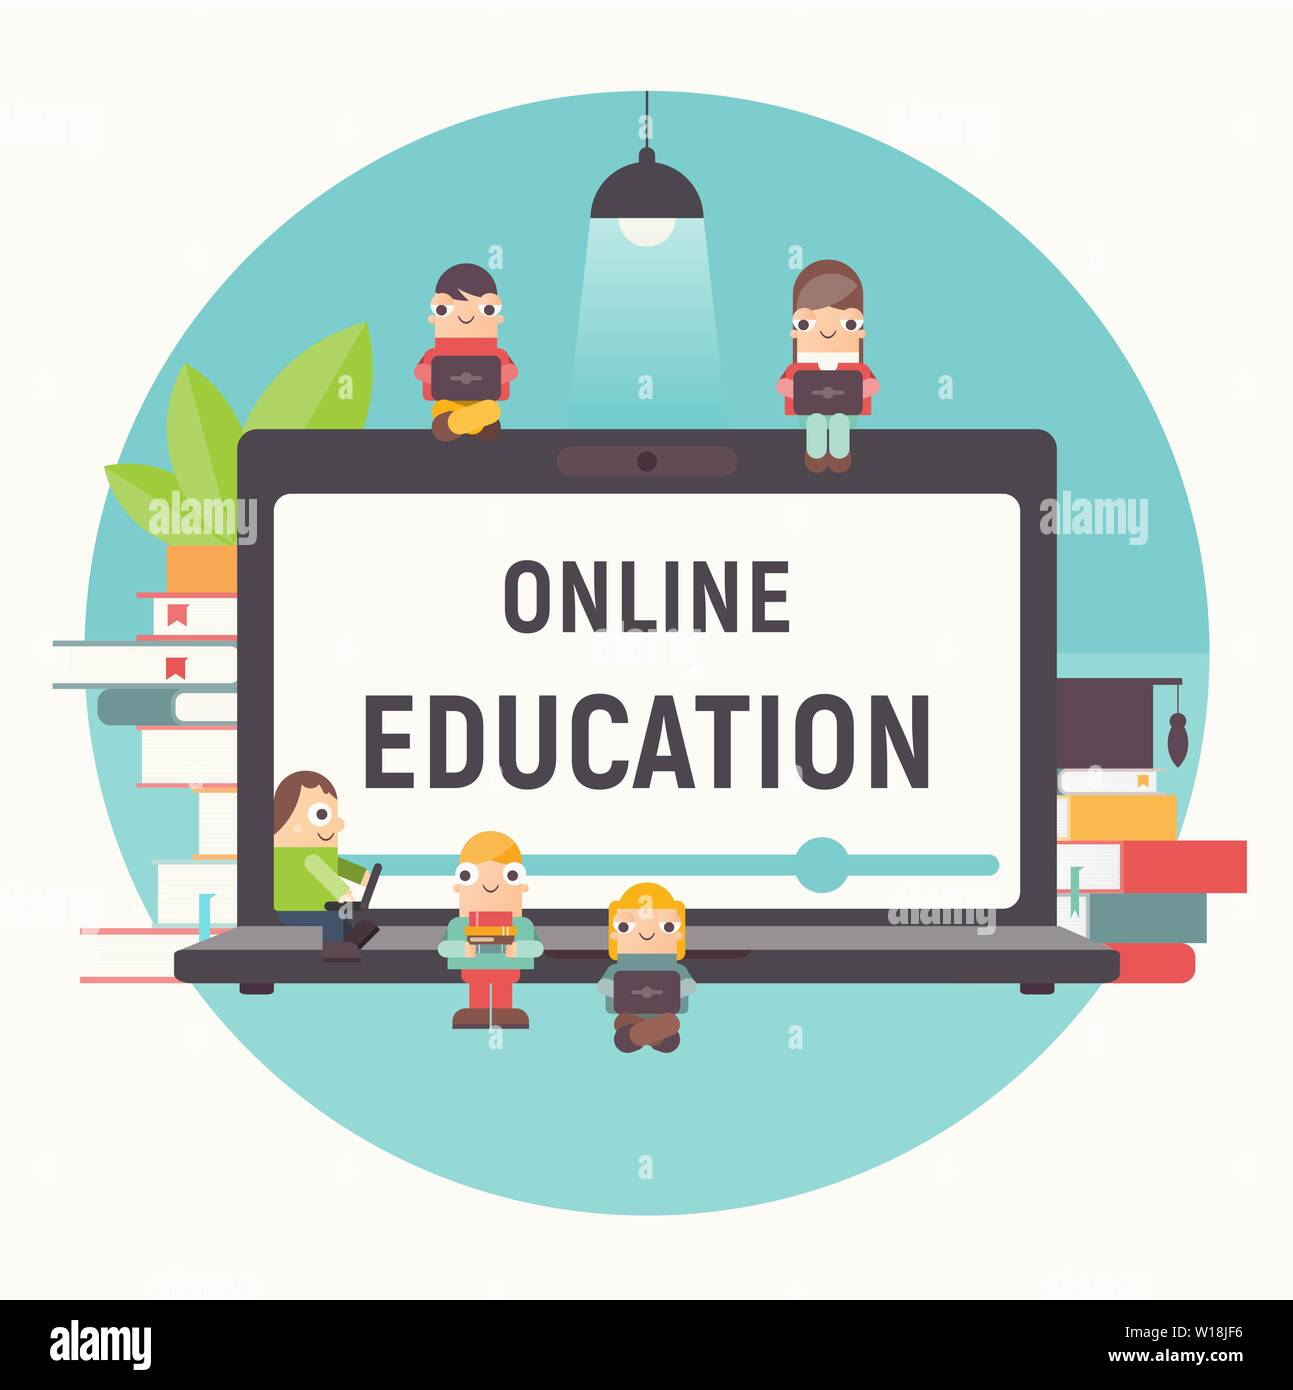 Online Education Concept Online Courses Tutorials E Learning Small Size Cartoon People Near Big Laptop Books And Lamp Vector Illustration Stock Vector Image Art Alamy